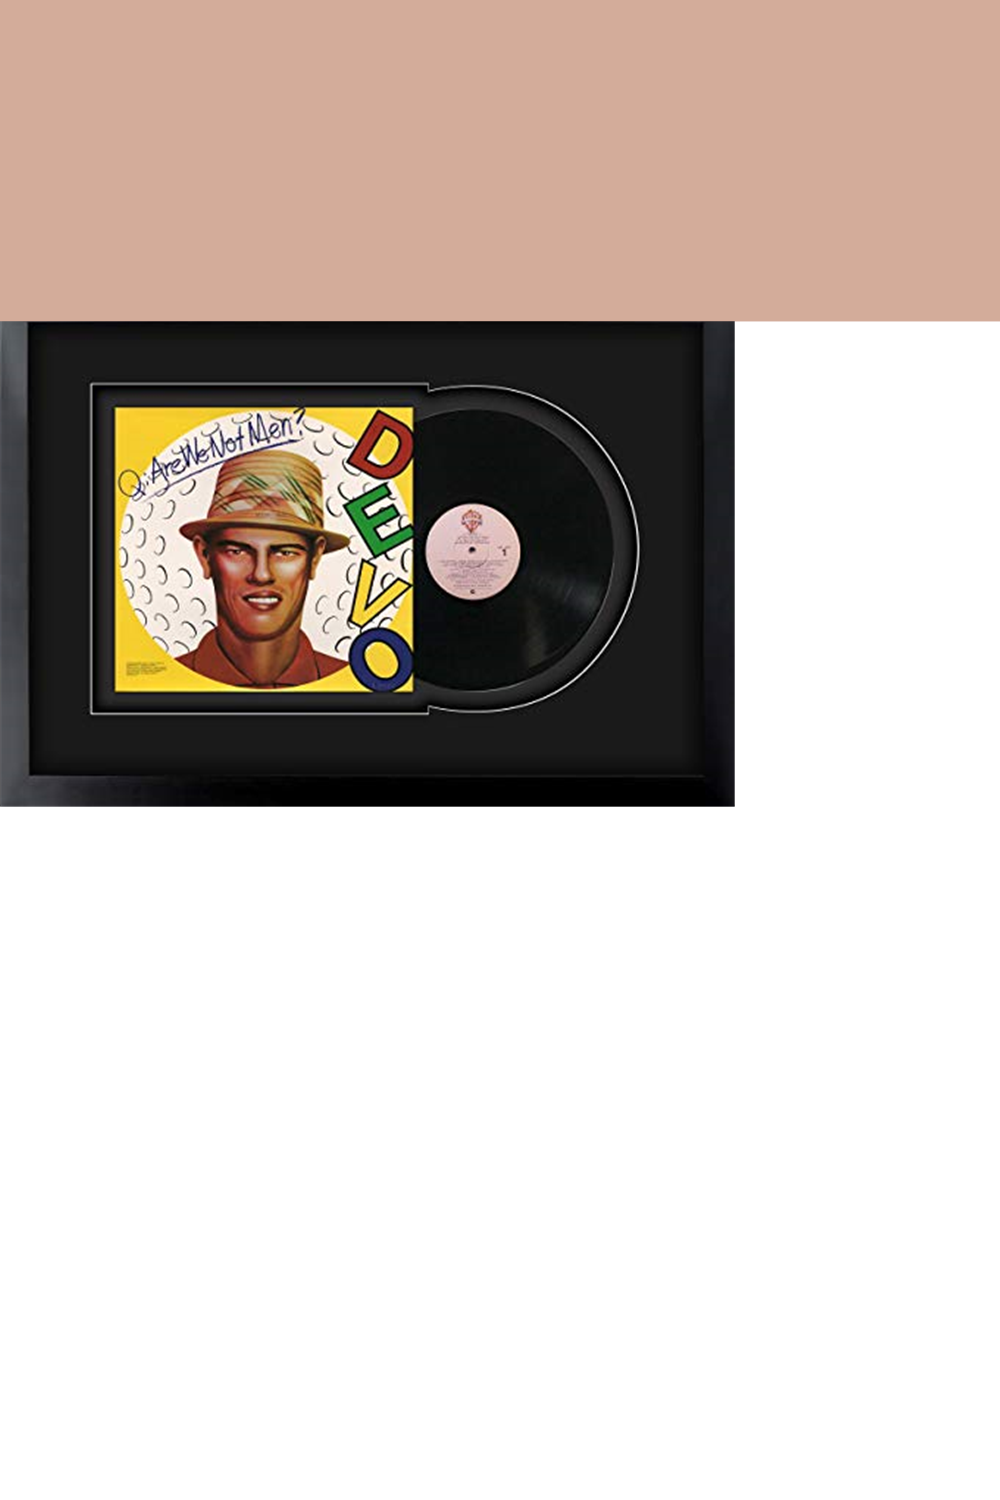 Devo Q Are We Not Men A We Are Devoa Album Lp Record Framed And Ready To Hang Framed Vinyl Record In 2020 Framed Records Vinyl Records Are We Not Men